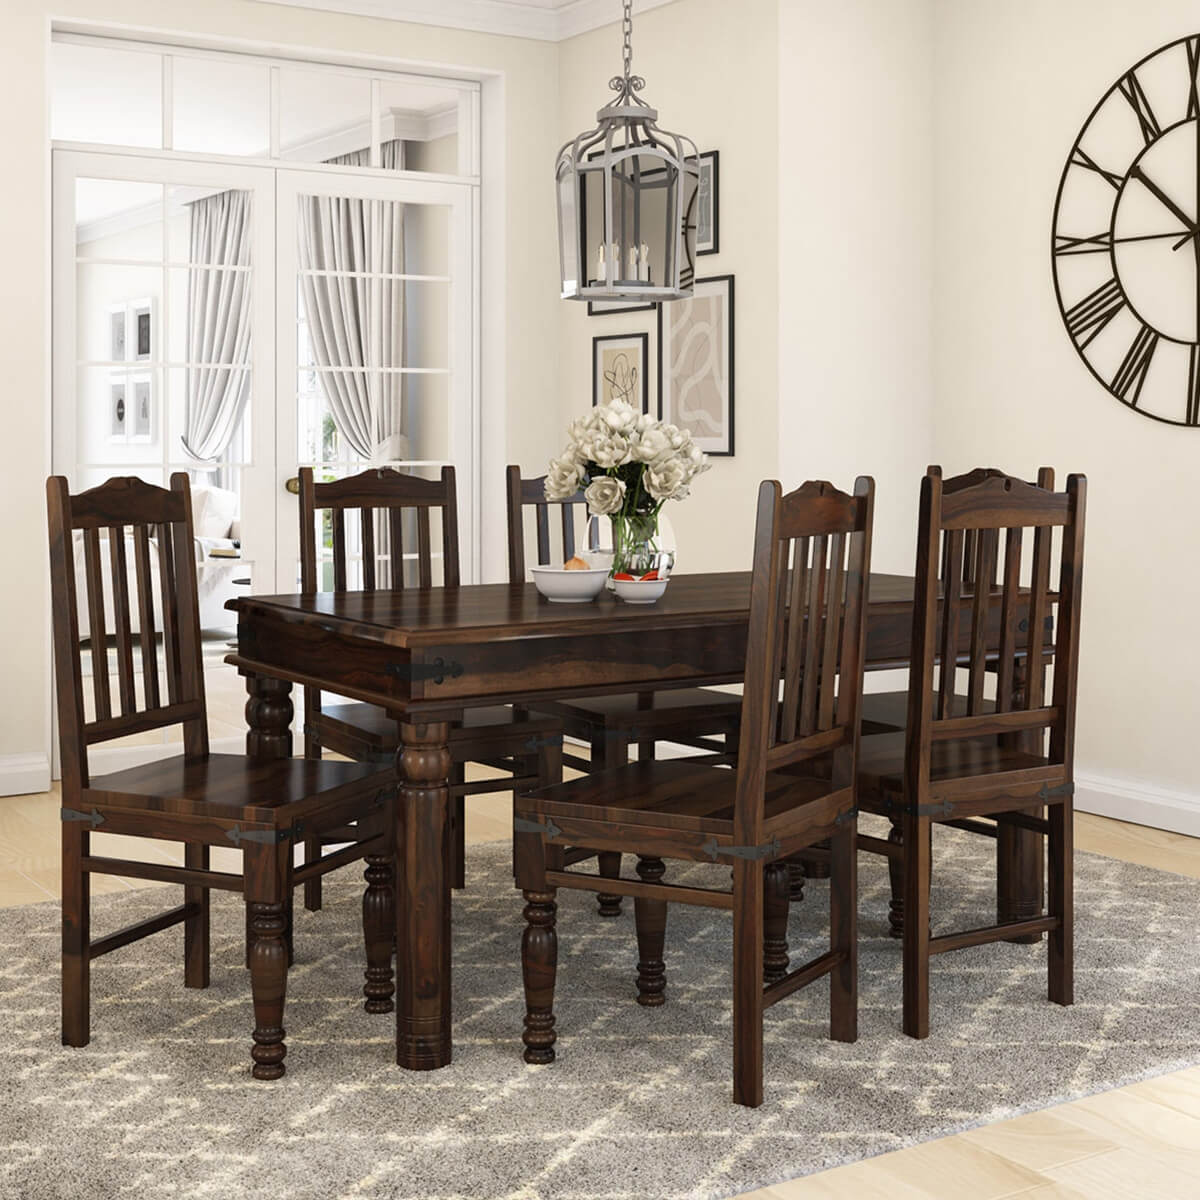 sc 1 st  Sierra Living Concepts & Oklahoma Farmhouse Traditional 5pc Solid Wood Country Dining Table Set